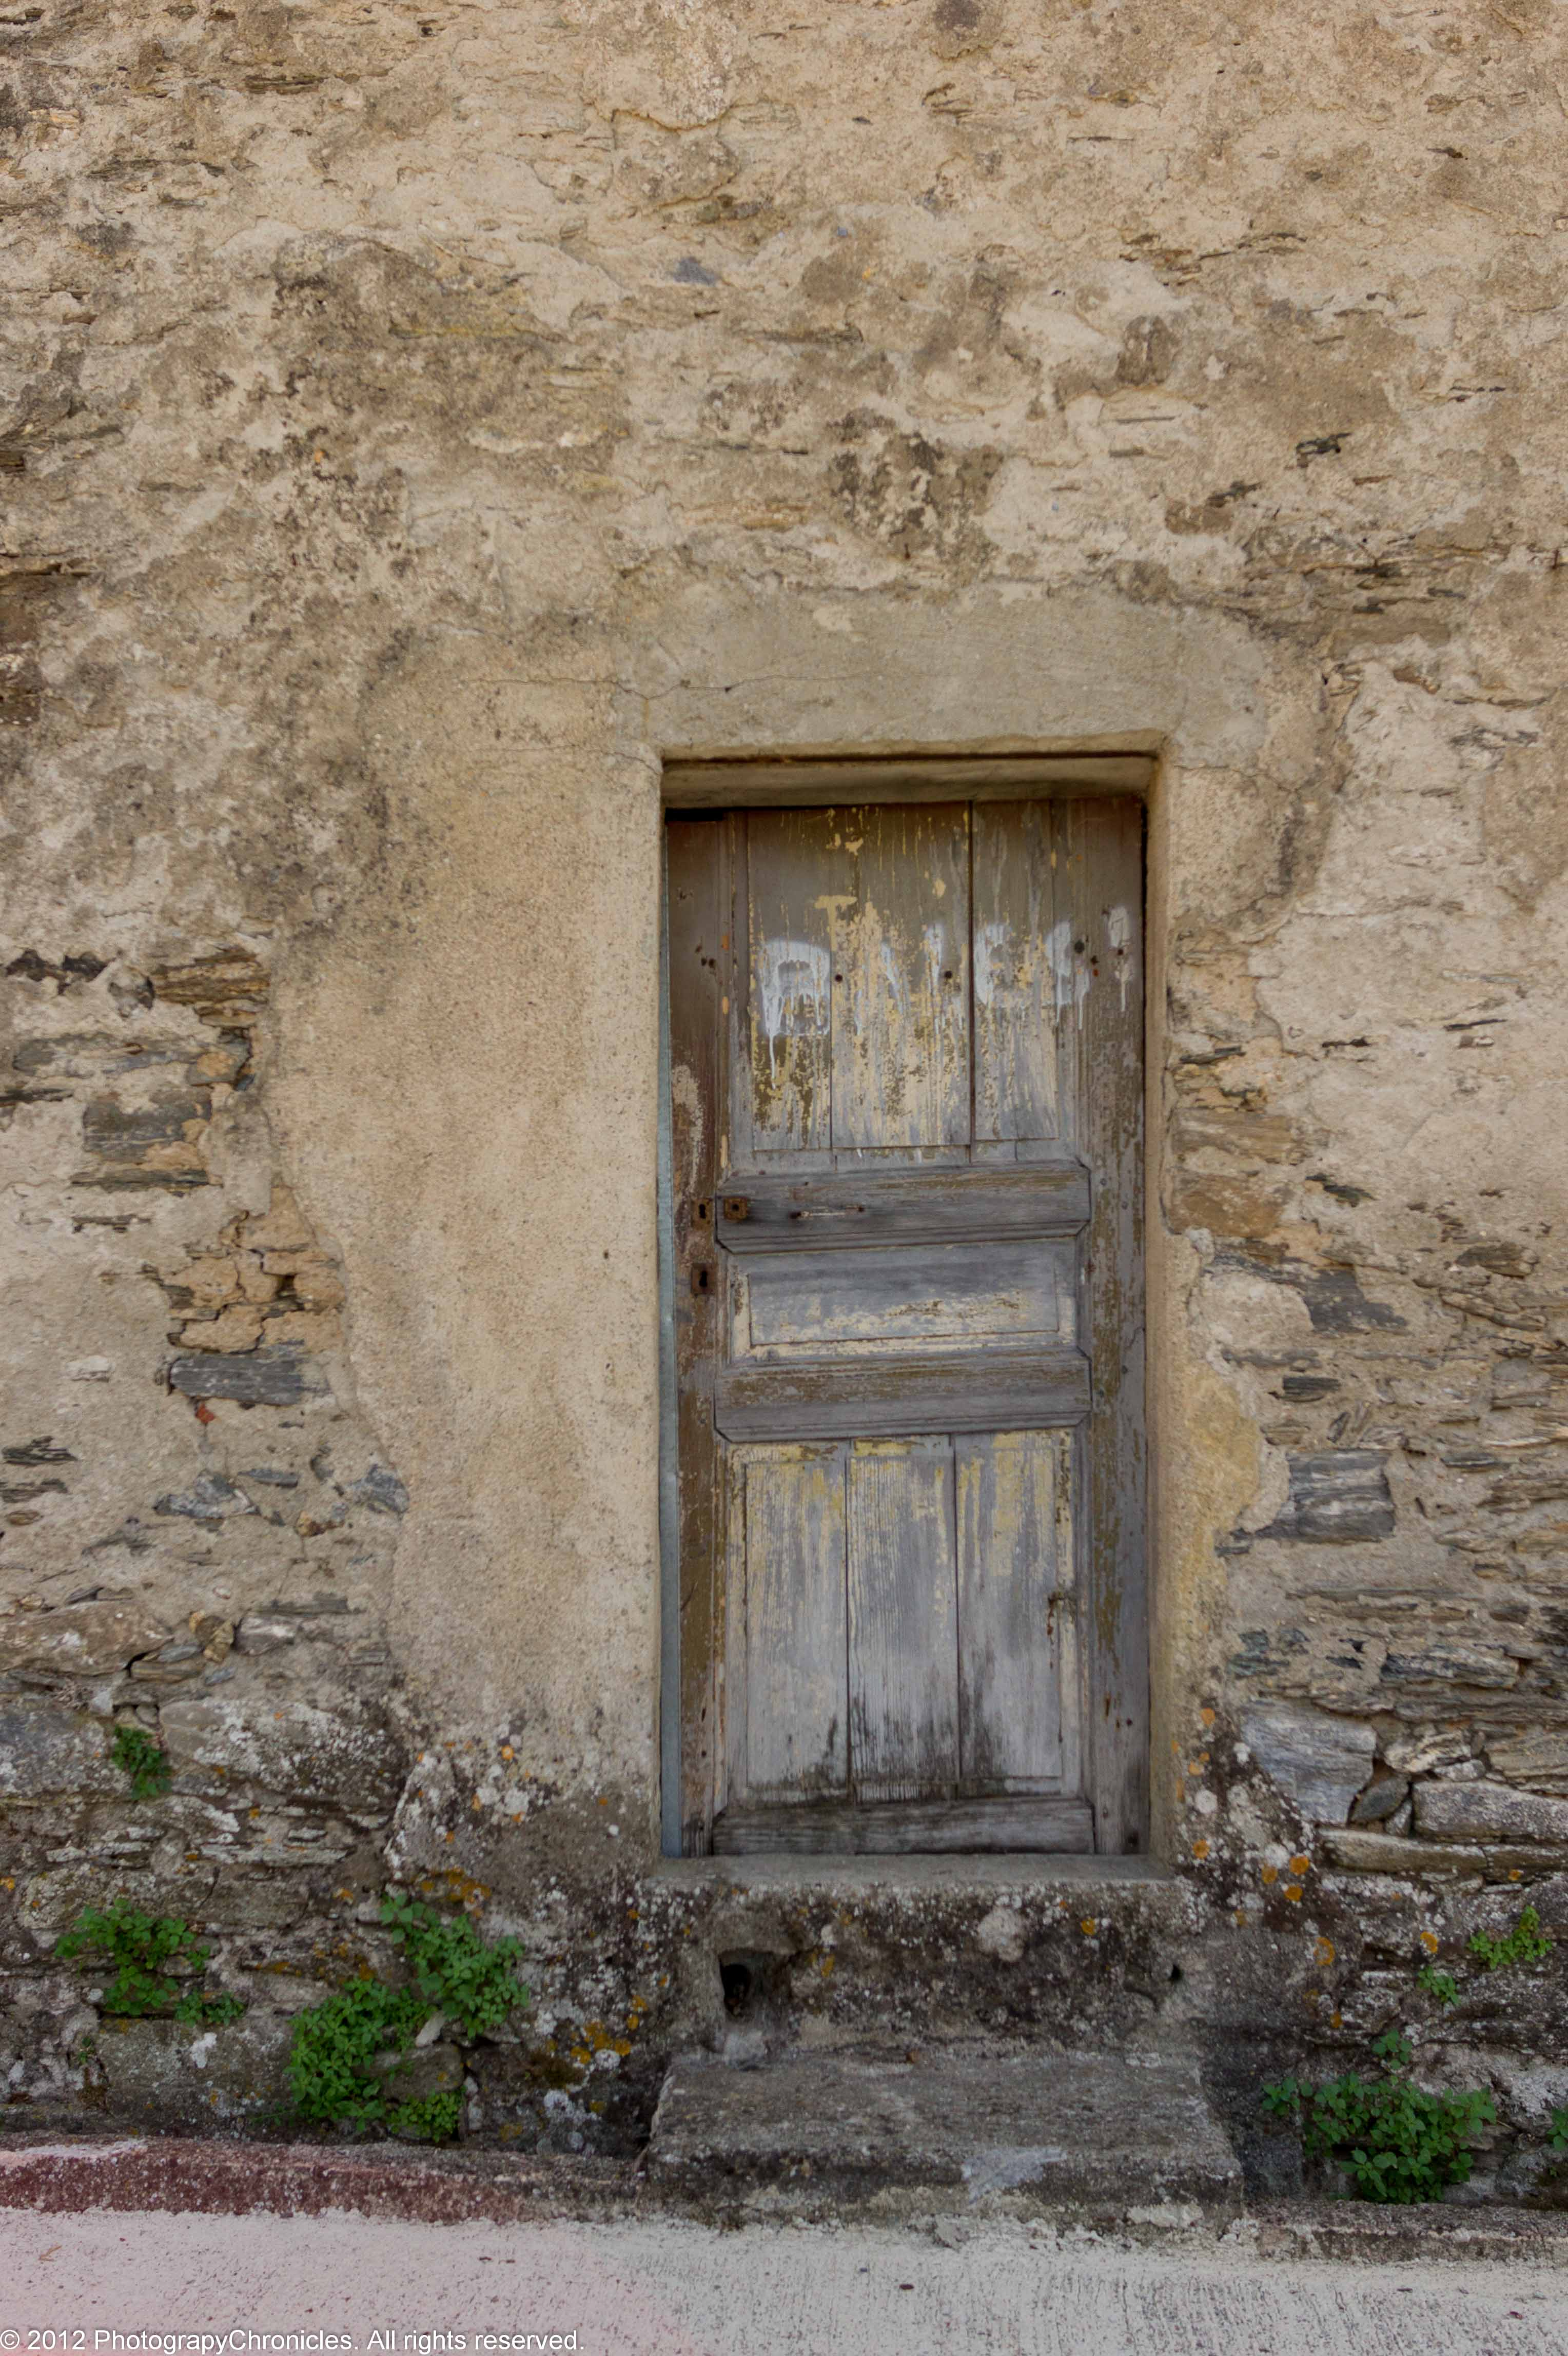 4592 #405A2F Rustic Doors – Part I PhotographyChronicles image Rustic Wooden Doors 39533056